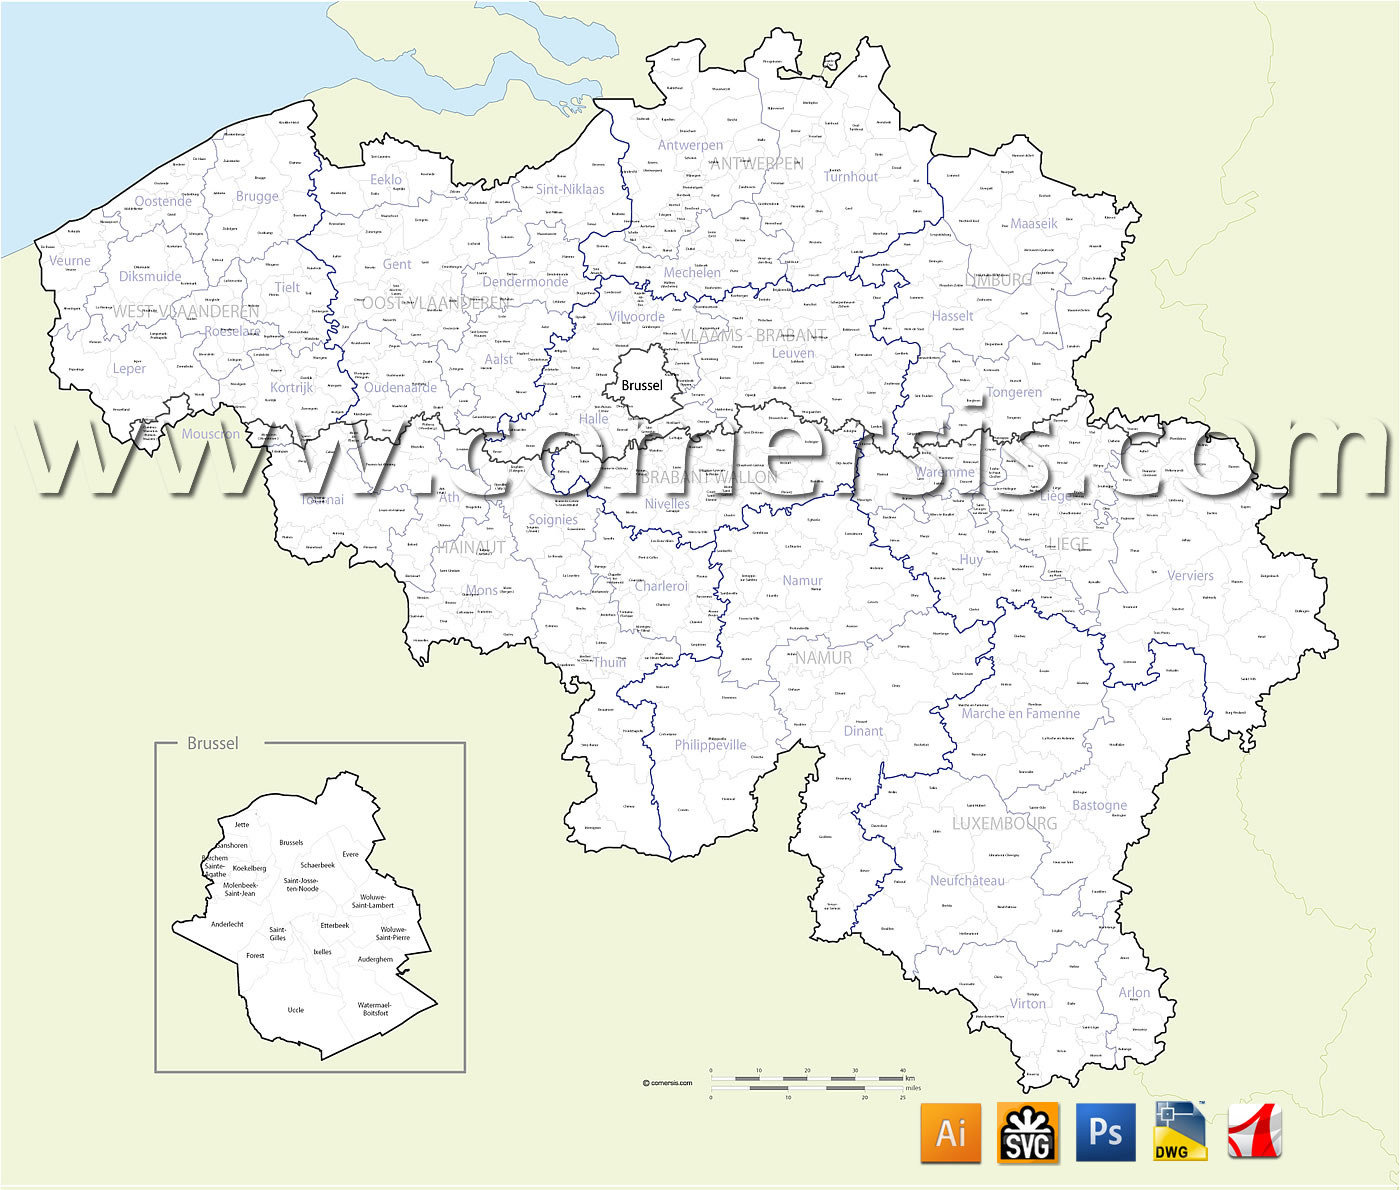 Map of Belgium with municipalities named